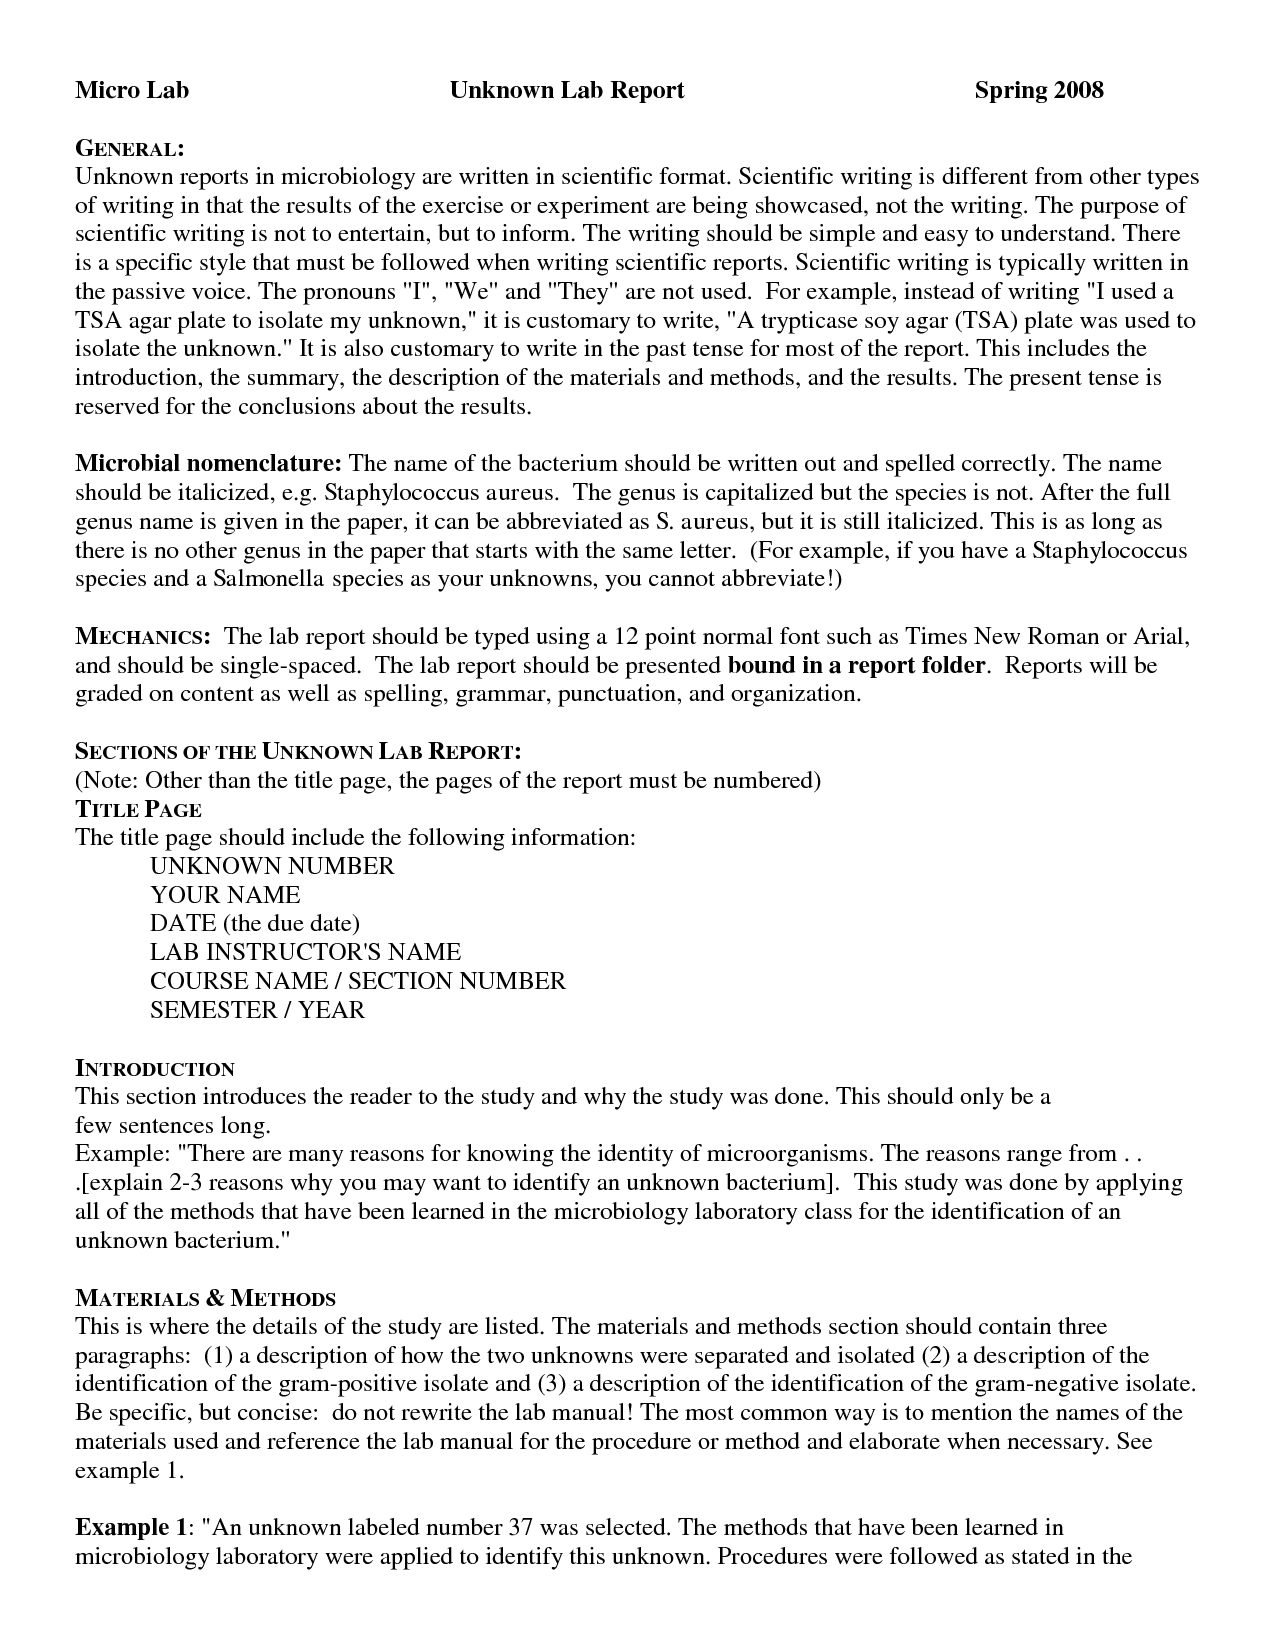 Poverty Essay Thesis  Example Of A Proposal Essay also Best Essays In English Microbiology Lab Reports Vita Bar S D  Microbiology  Reflective Essay English Class